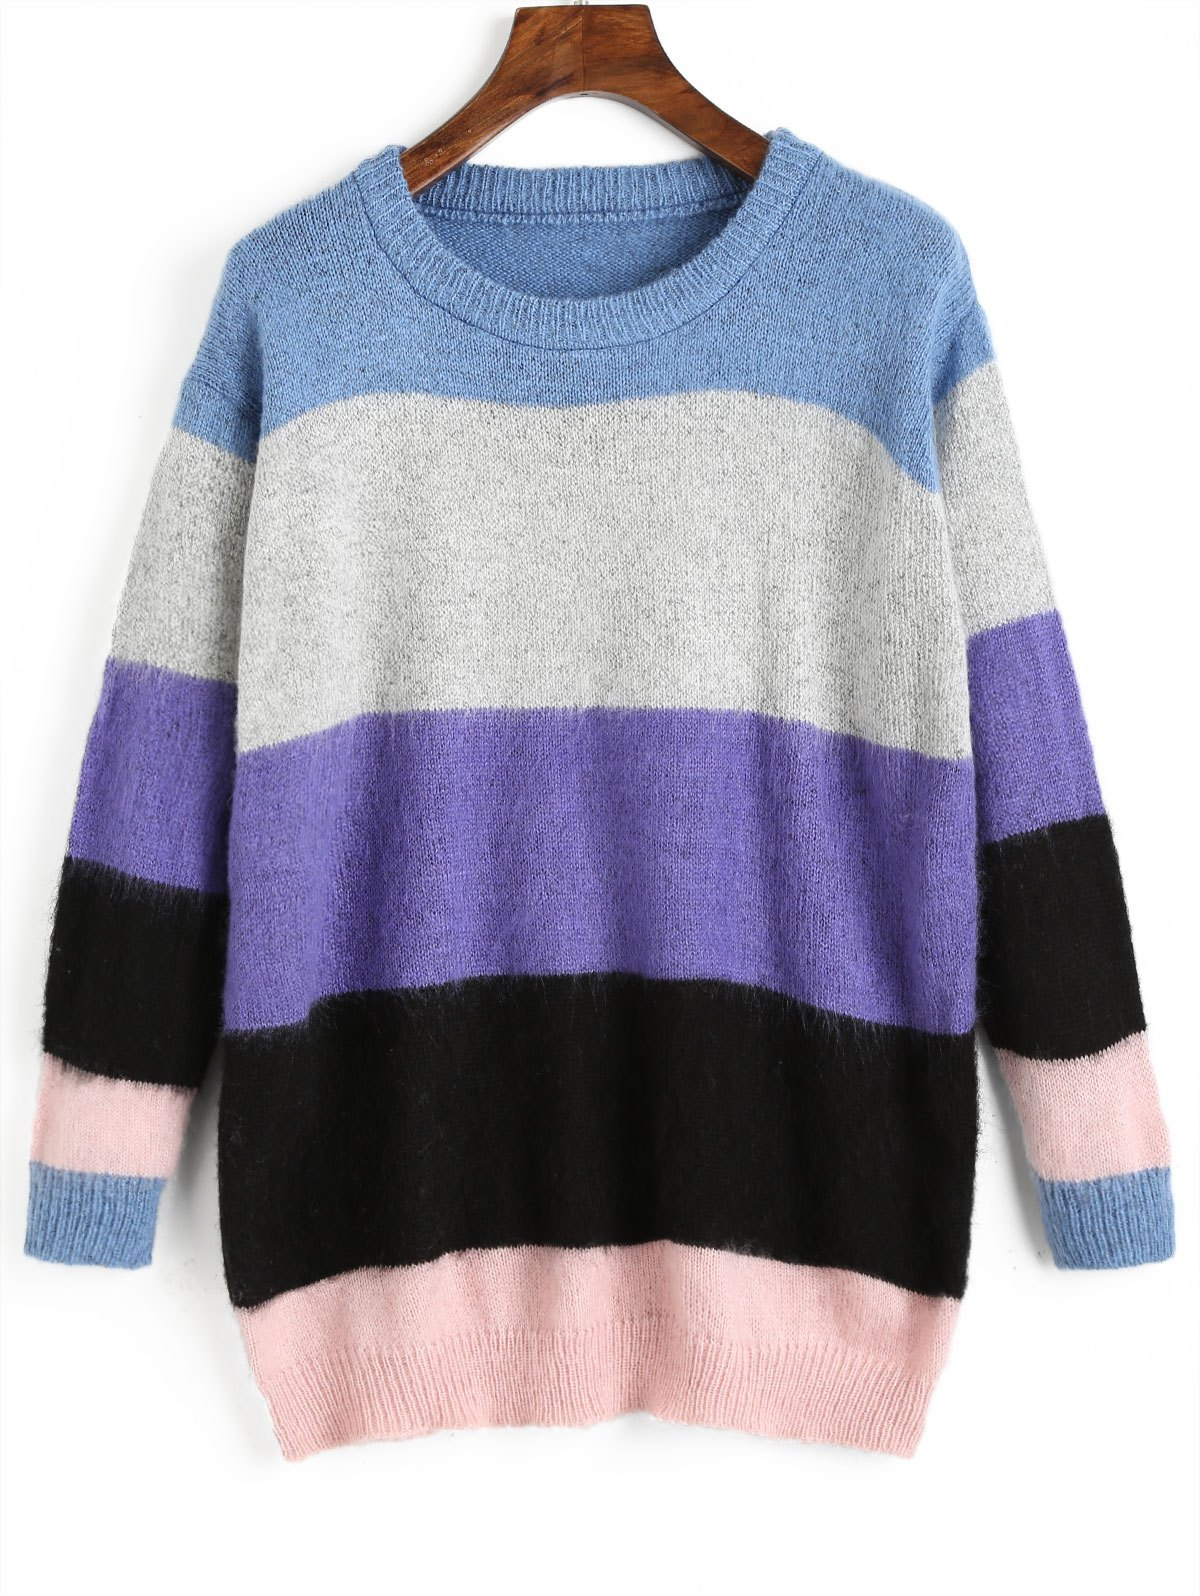 Pullover Color Block Tunic Sweater - multicolor COLOR ONE SIZE